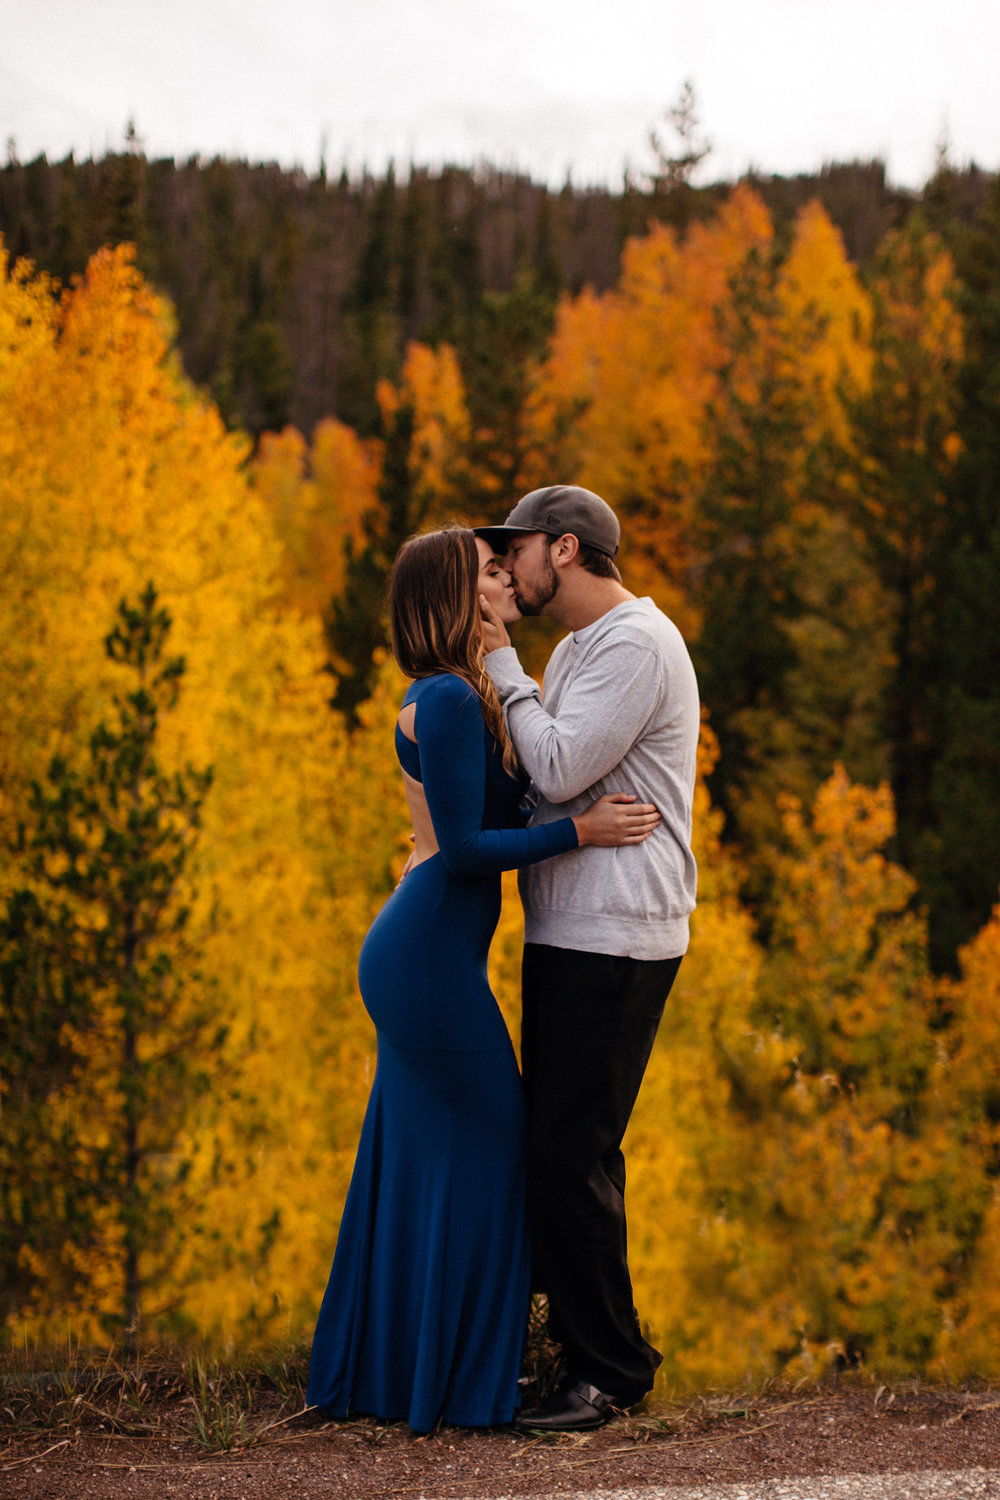 Liz Osban Photography Cheyenne Wyoming Engagement Wedding Photographer couple adventure elopement wedding laramie denver fort collins colorado rocky mountain national park41.jpg